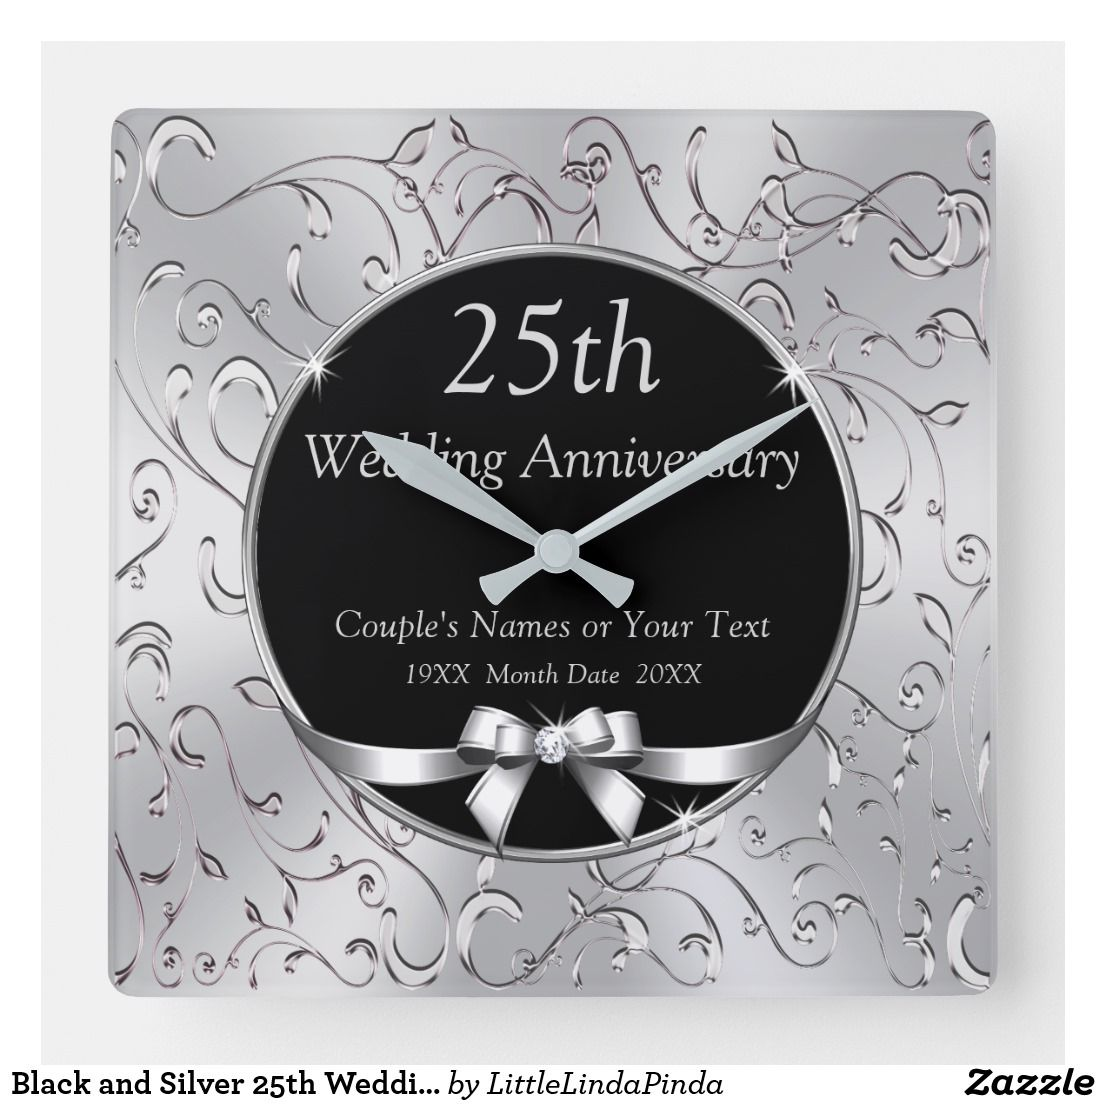 Black And Silver 25th Wedding Anniversary Gifts Square Wall Clock Zazzle Com 25 Wedding Anniversary Gifts 25th Anniversary Gifts 25th Wedding Anniversary